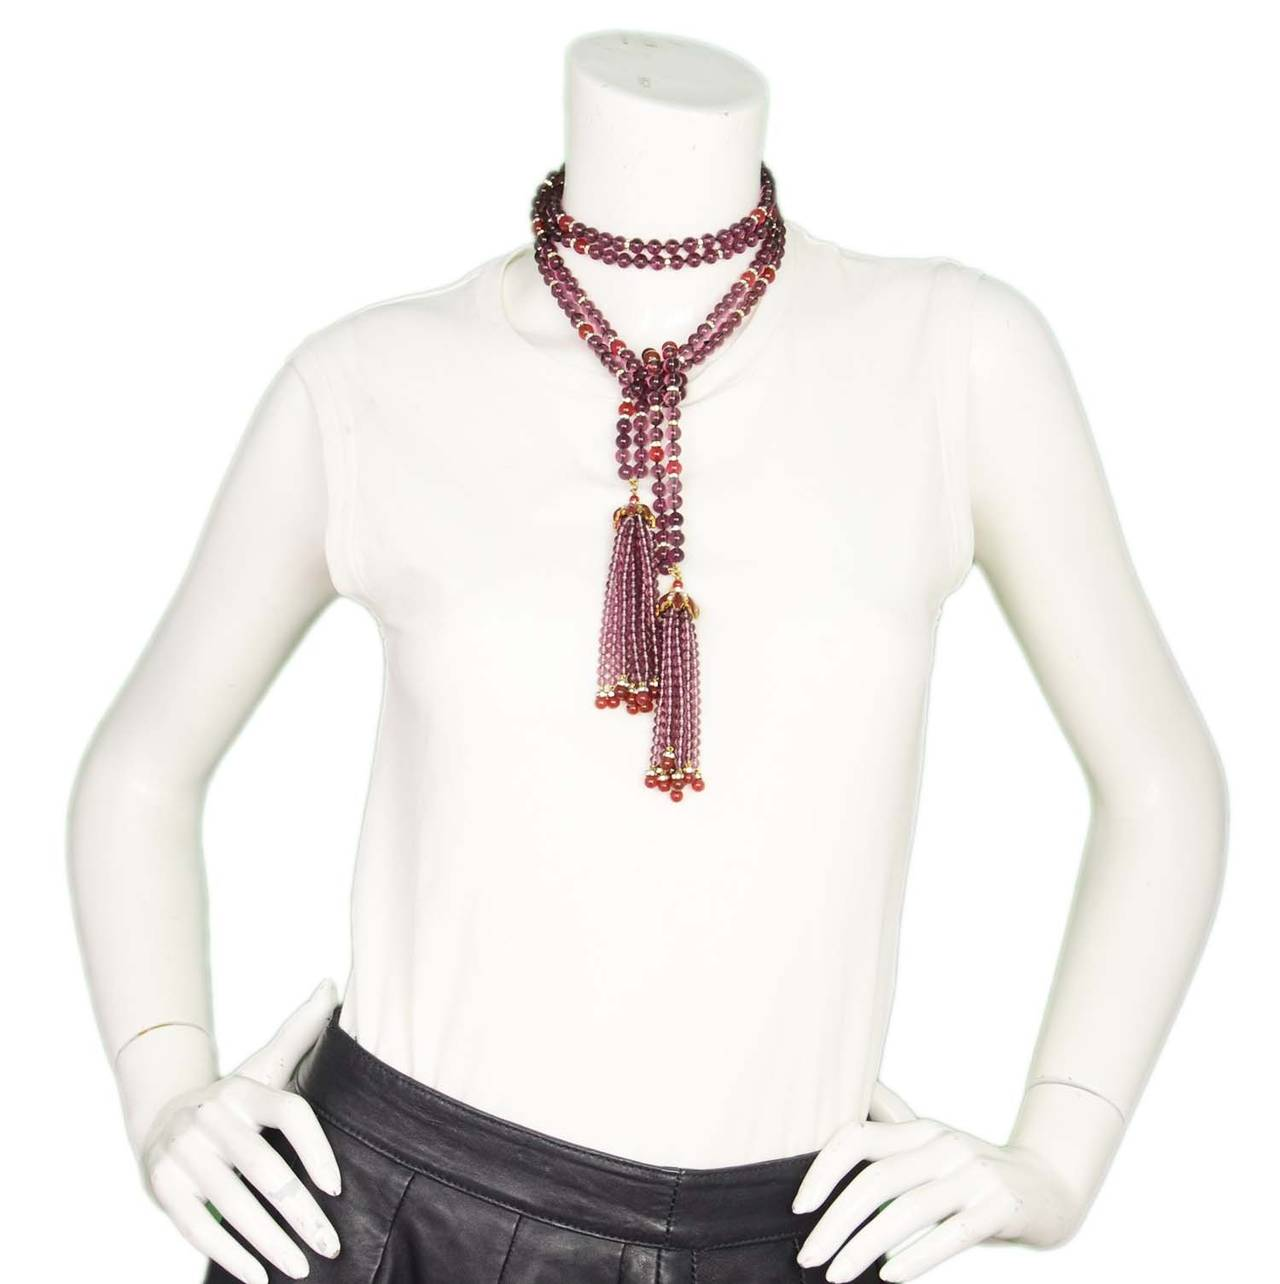 CHANEL Vintage '83 Double Strand Gripoix Bead Lariat Necklace w/ Tassels 7